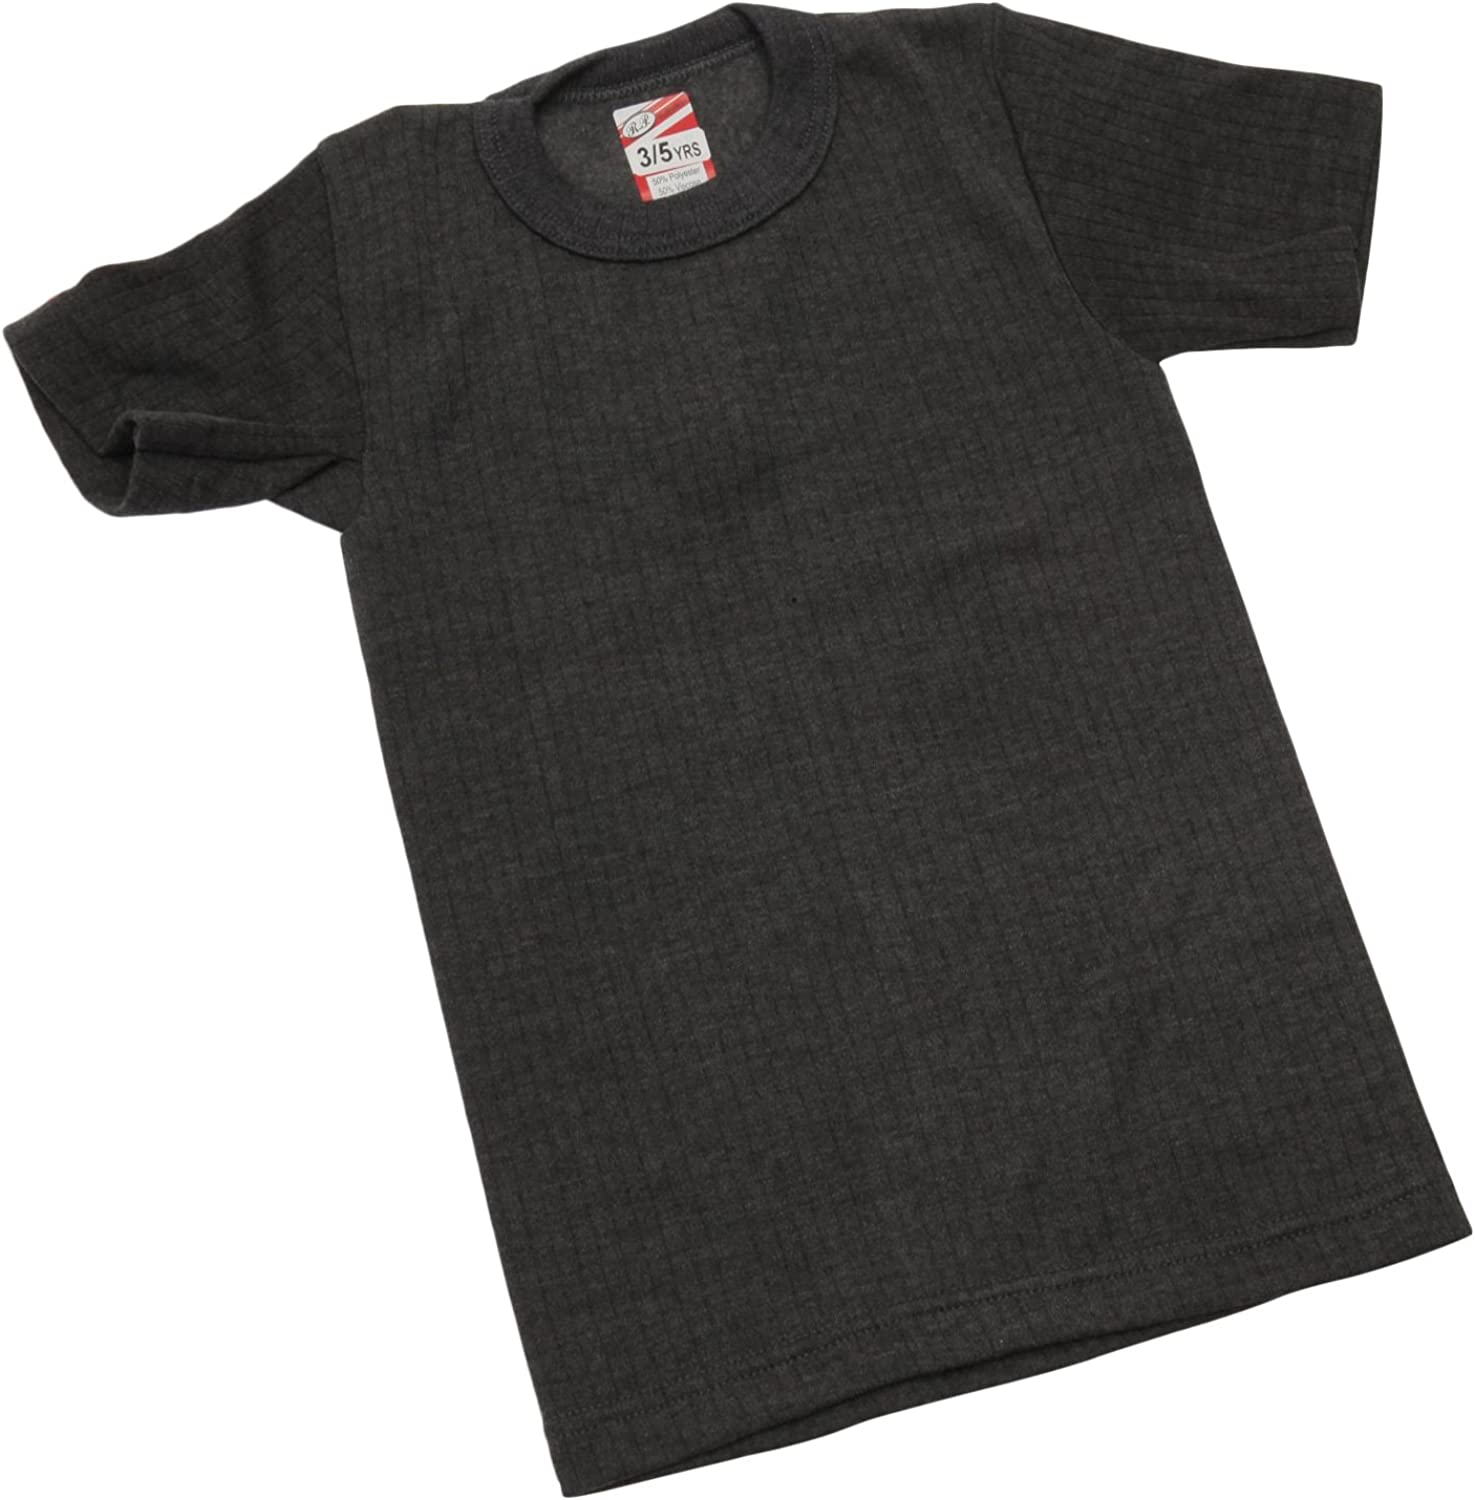 Charcoal Universal Textiles Boys Thermal Clothing Short Sleeved T Shirt Polyviscose Range Age 3-5 Chest: 20-22inch British Made